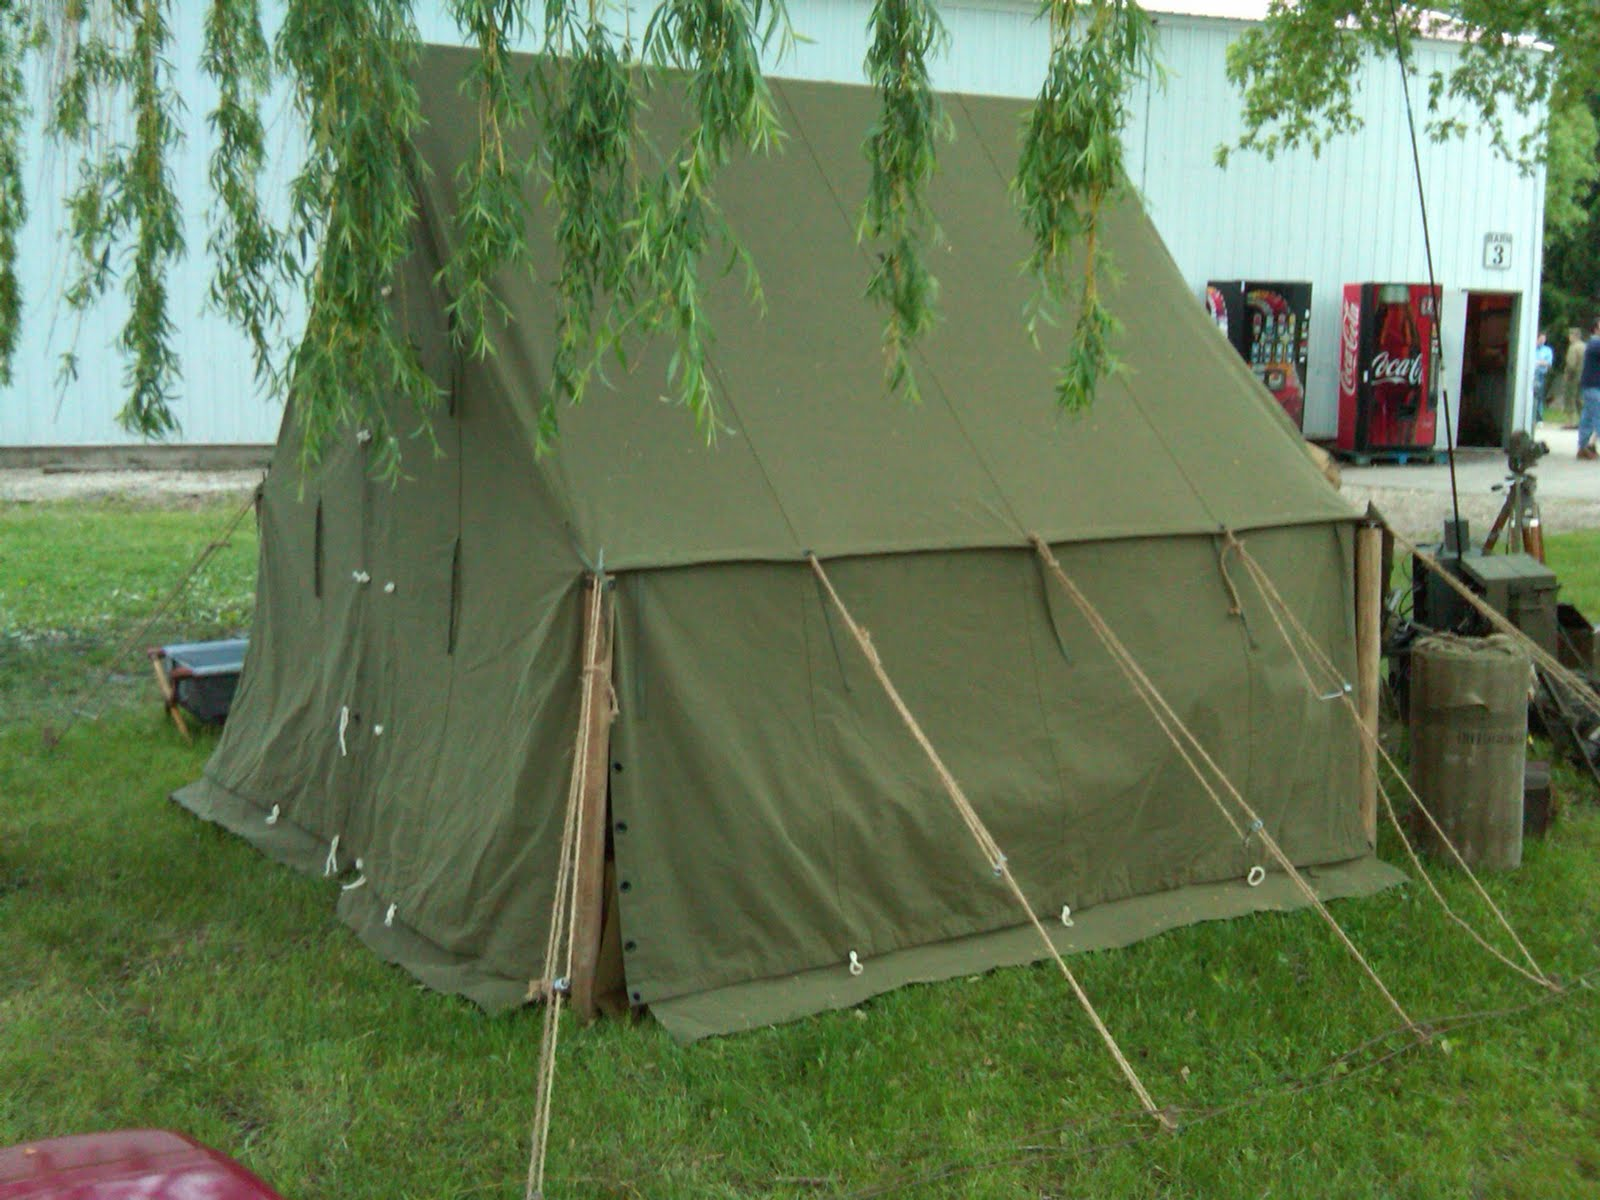 Armbruster Displays WWII Canvas Tents during Anzio Express 2011 & Armbruster Displays WWII Canvas Tents during Anzio Express 2011 ...